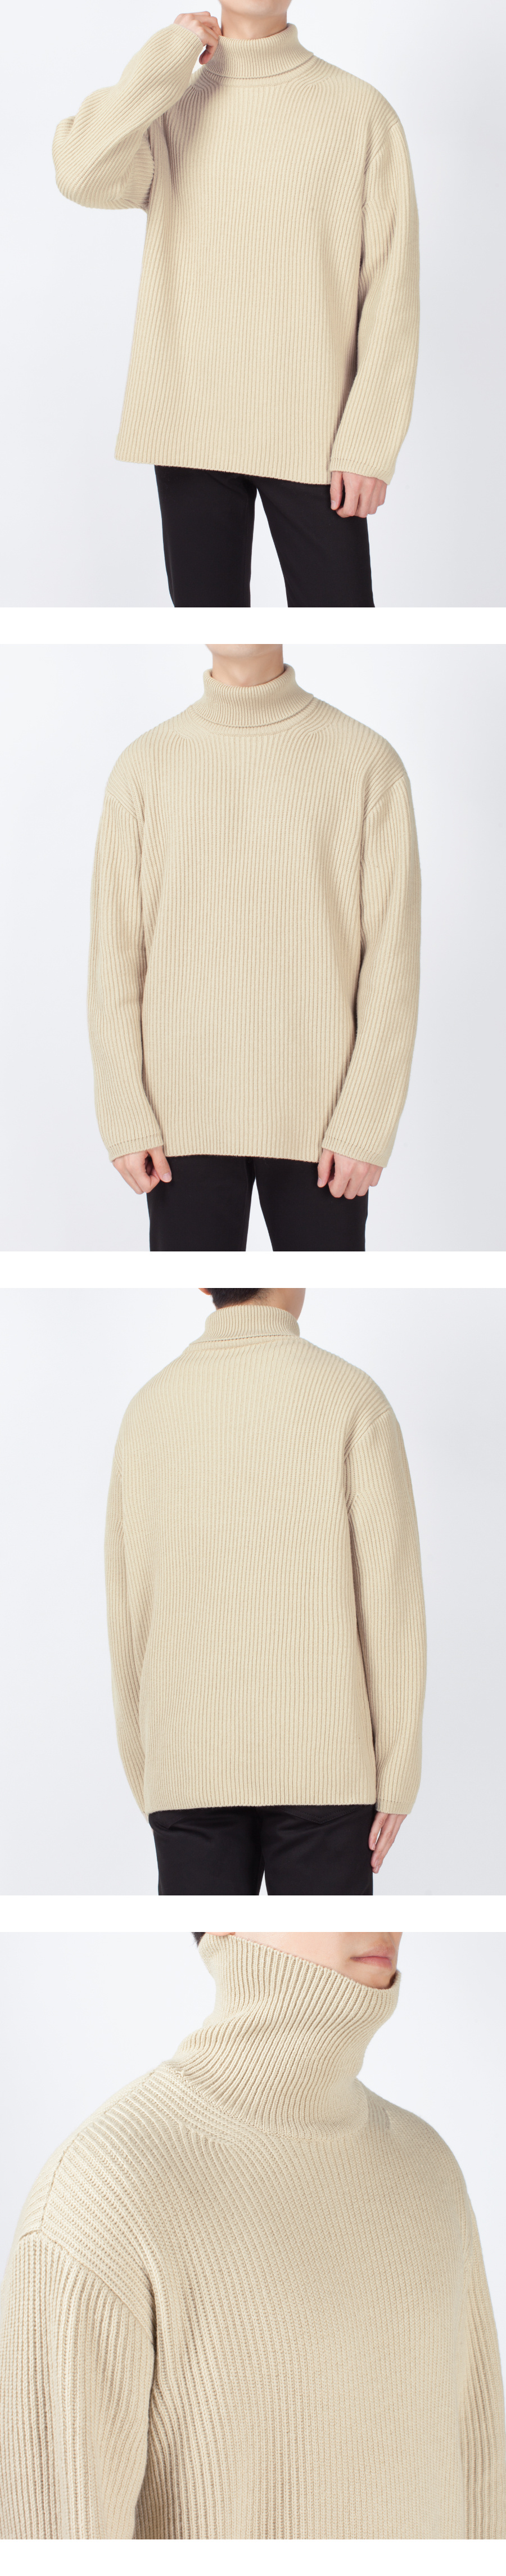 피스워커(PIECE WORKER) Oversize Neck Knit - Beige / Overfit